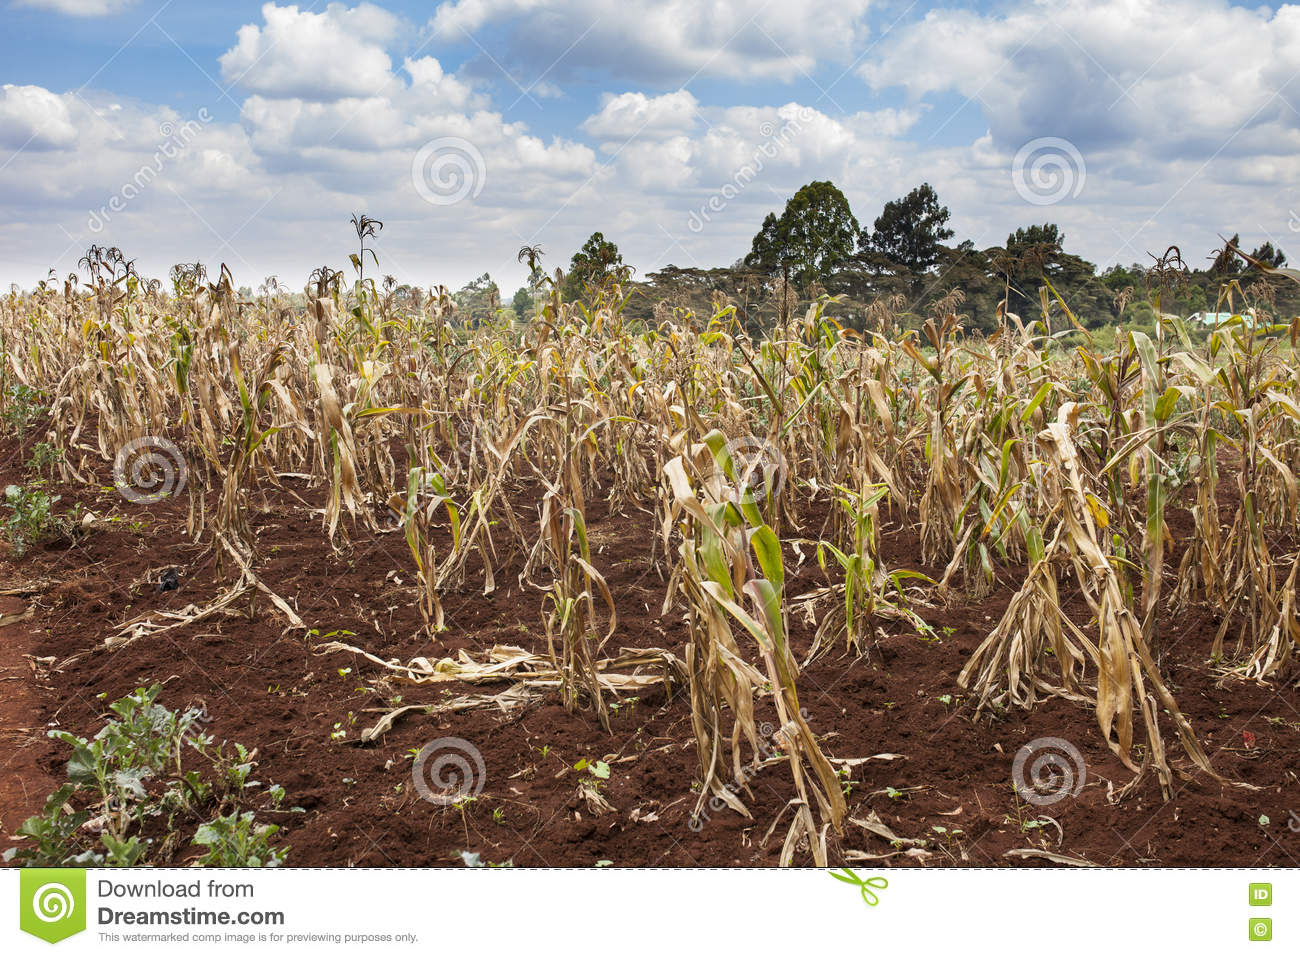 Failing crops in Kenya